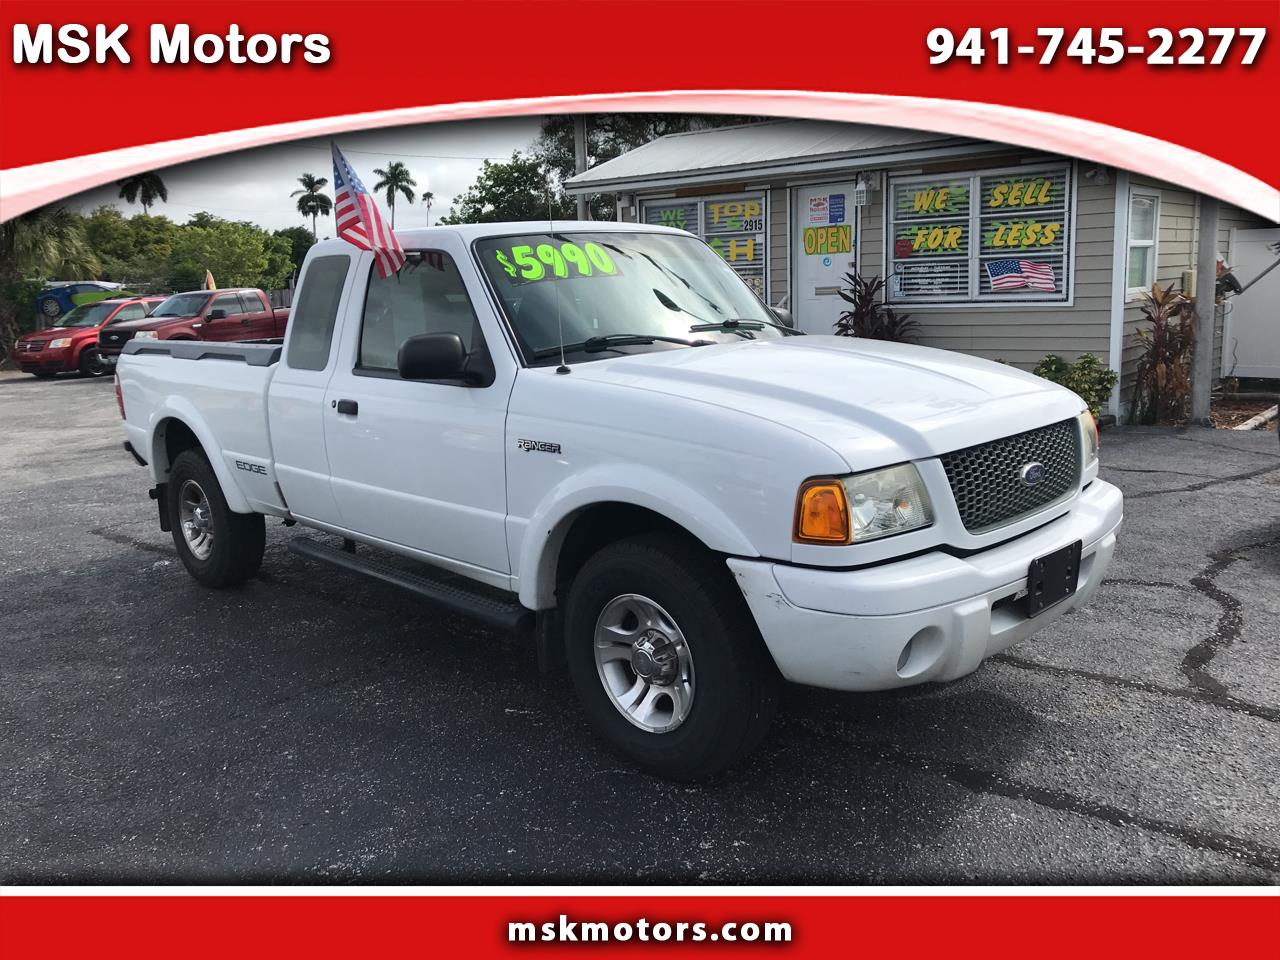 2002 Ford Ranger Supercab 3.0L Edge Plus